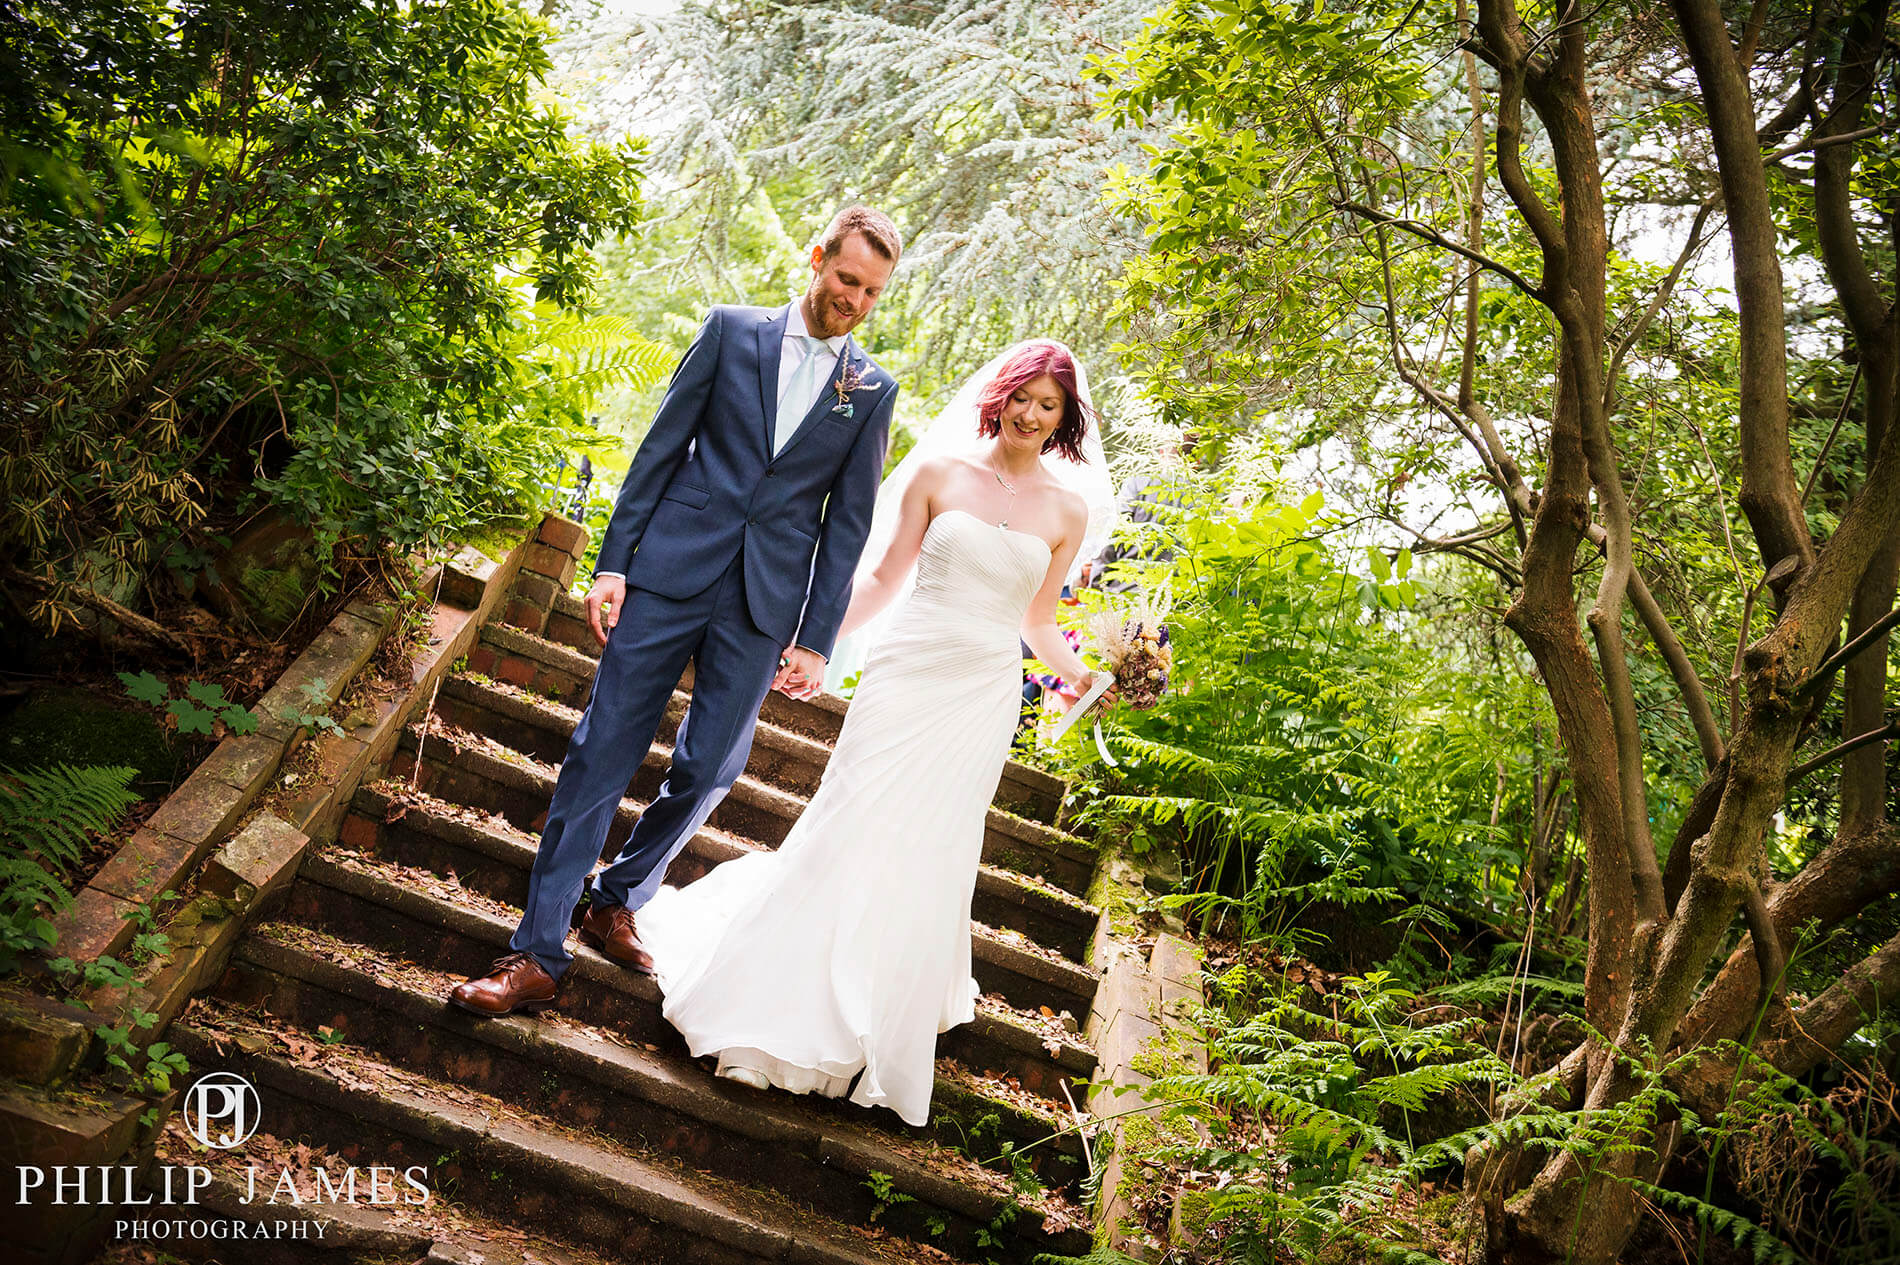 Birmingham Wedding Photographer - Philip James Photography based in Solihull (12 of 68)